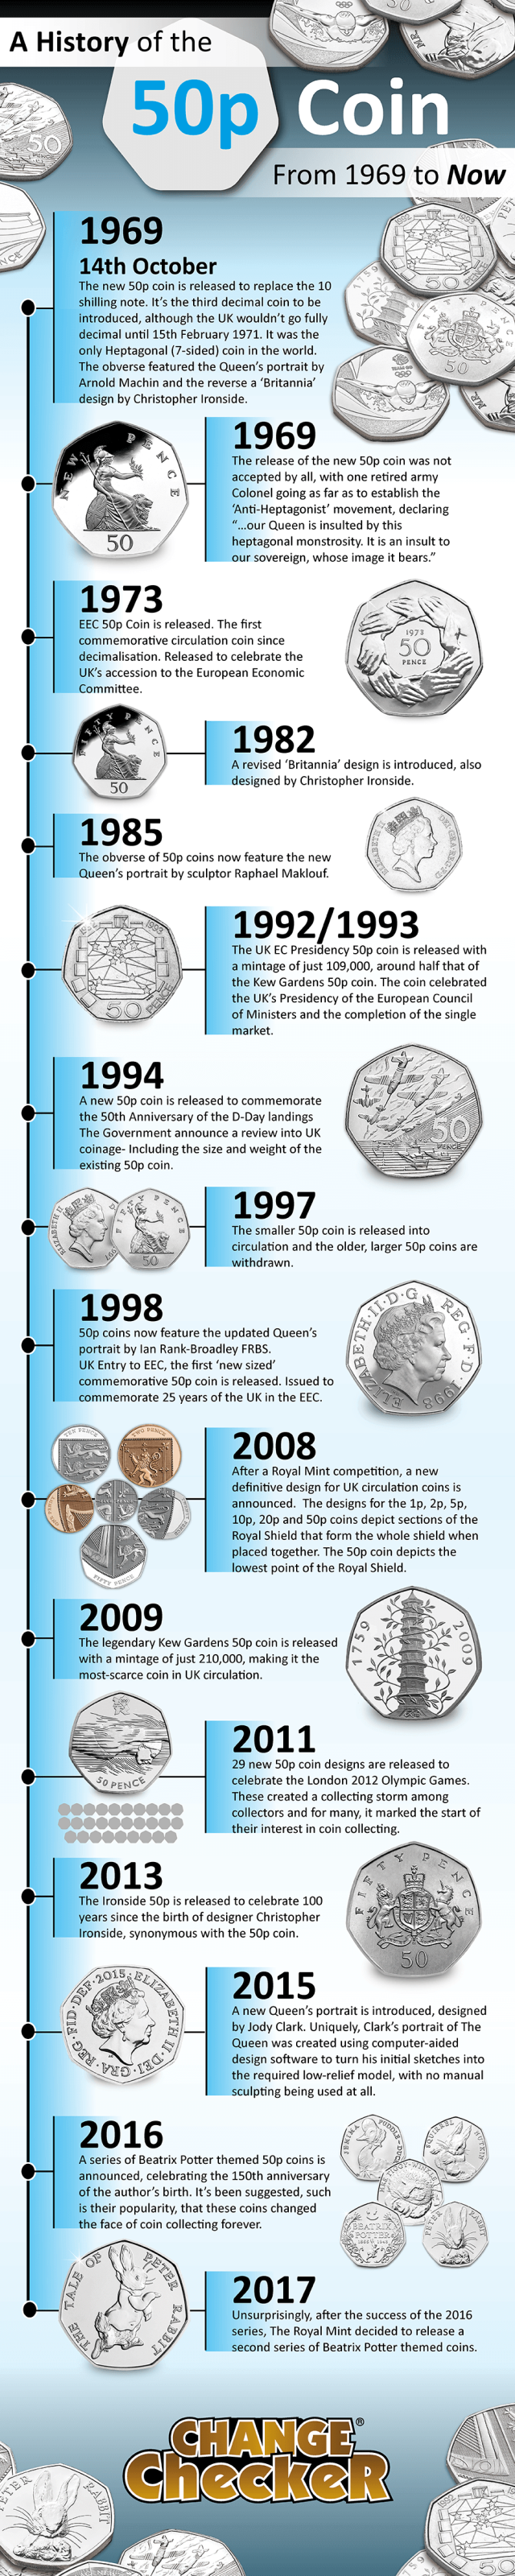 50p coin infographic - A History of the 50p Coin